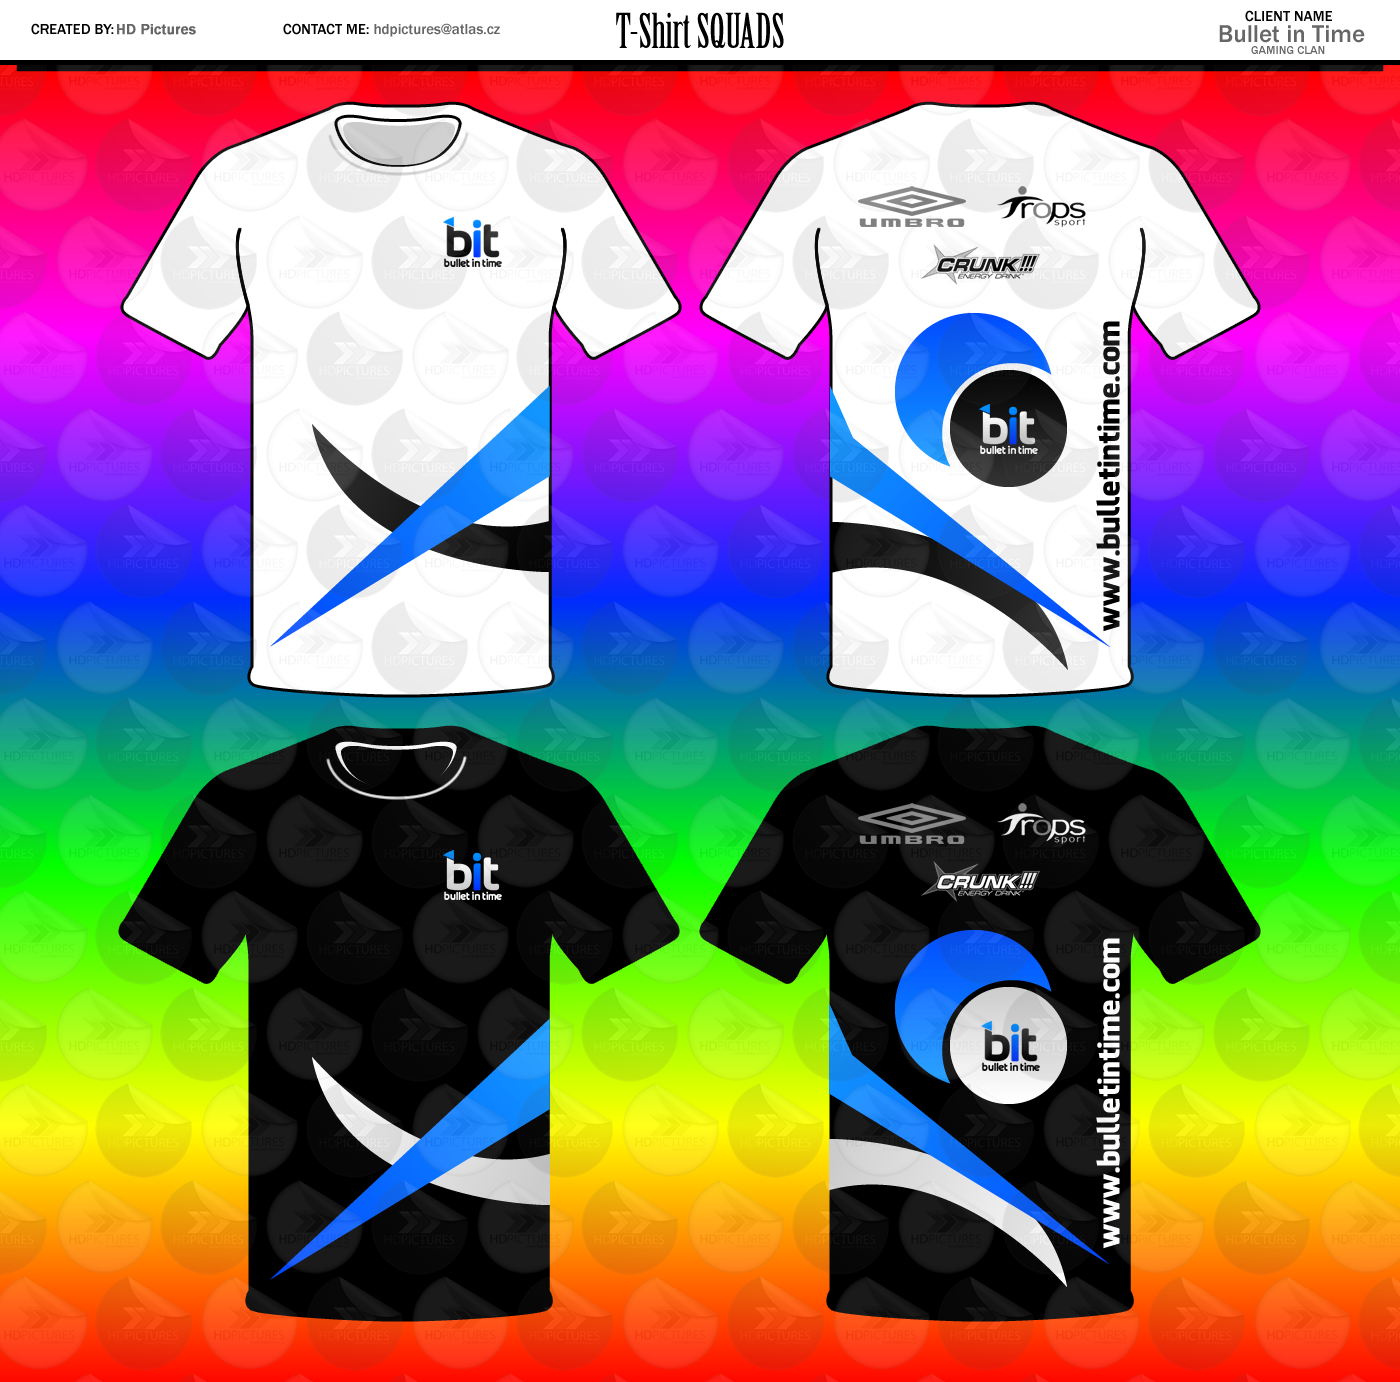 design team t shirts by hdpictures designs interfaces fashion t shirt